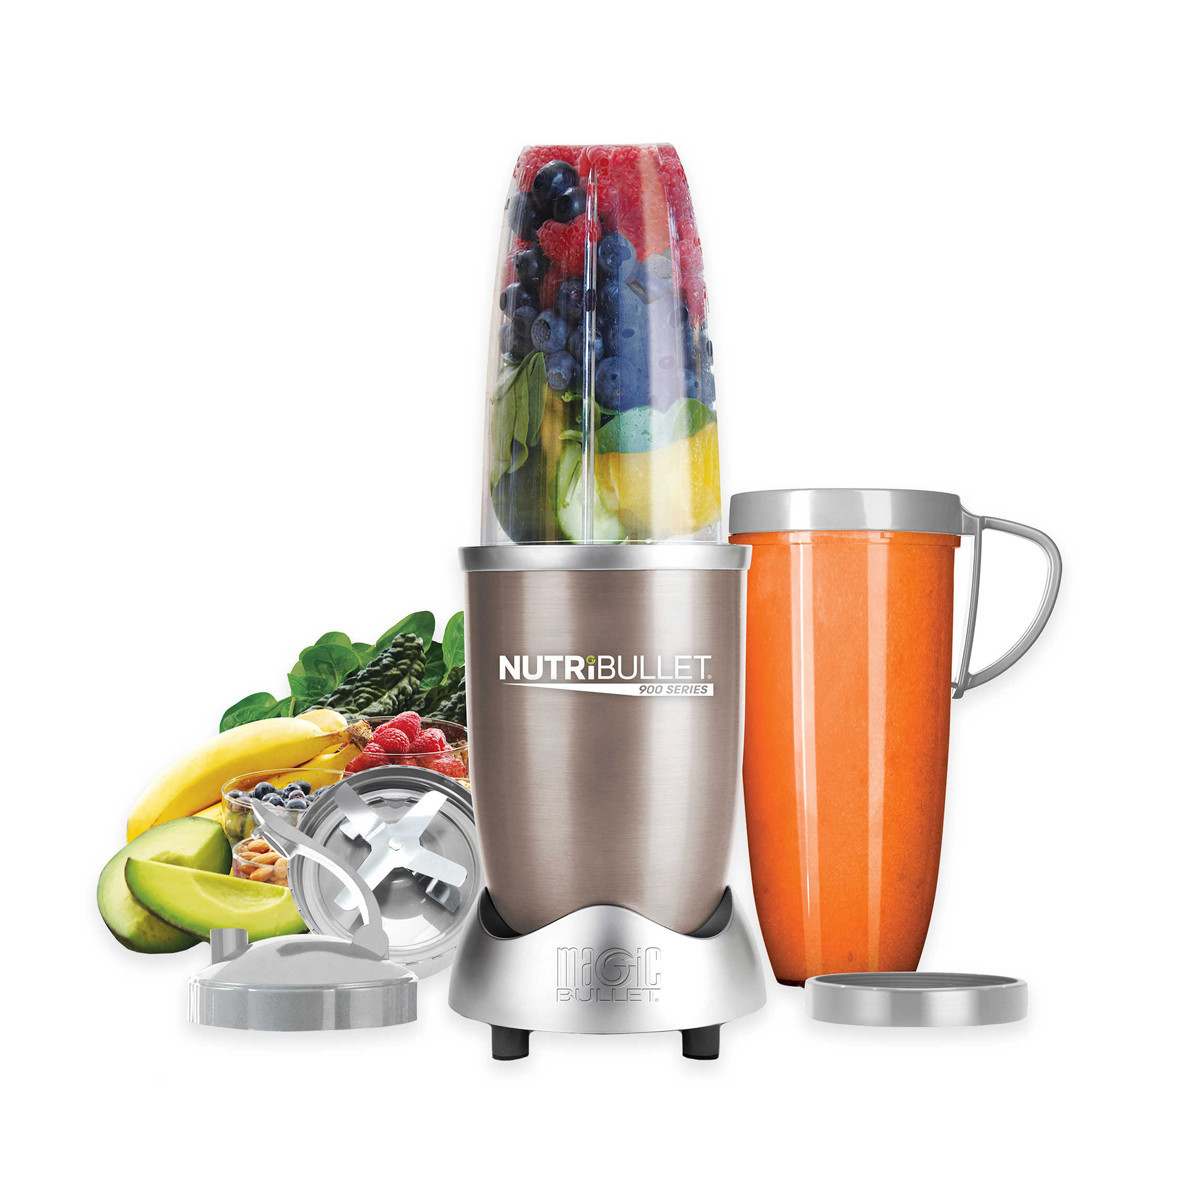 Compact blender with a travel cup photo